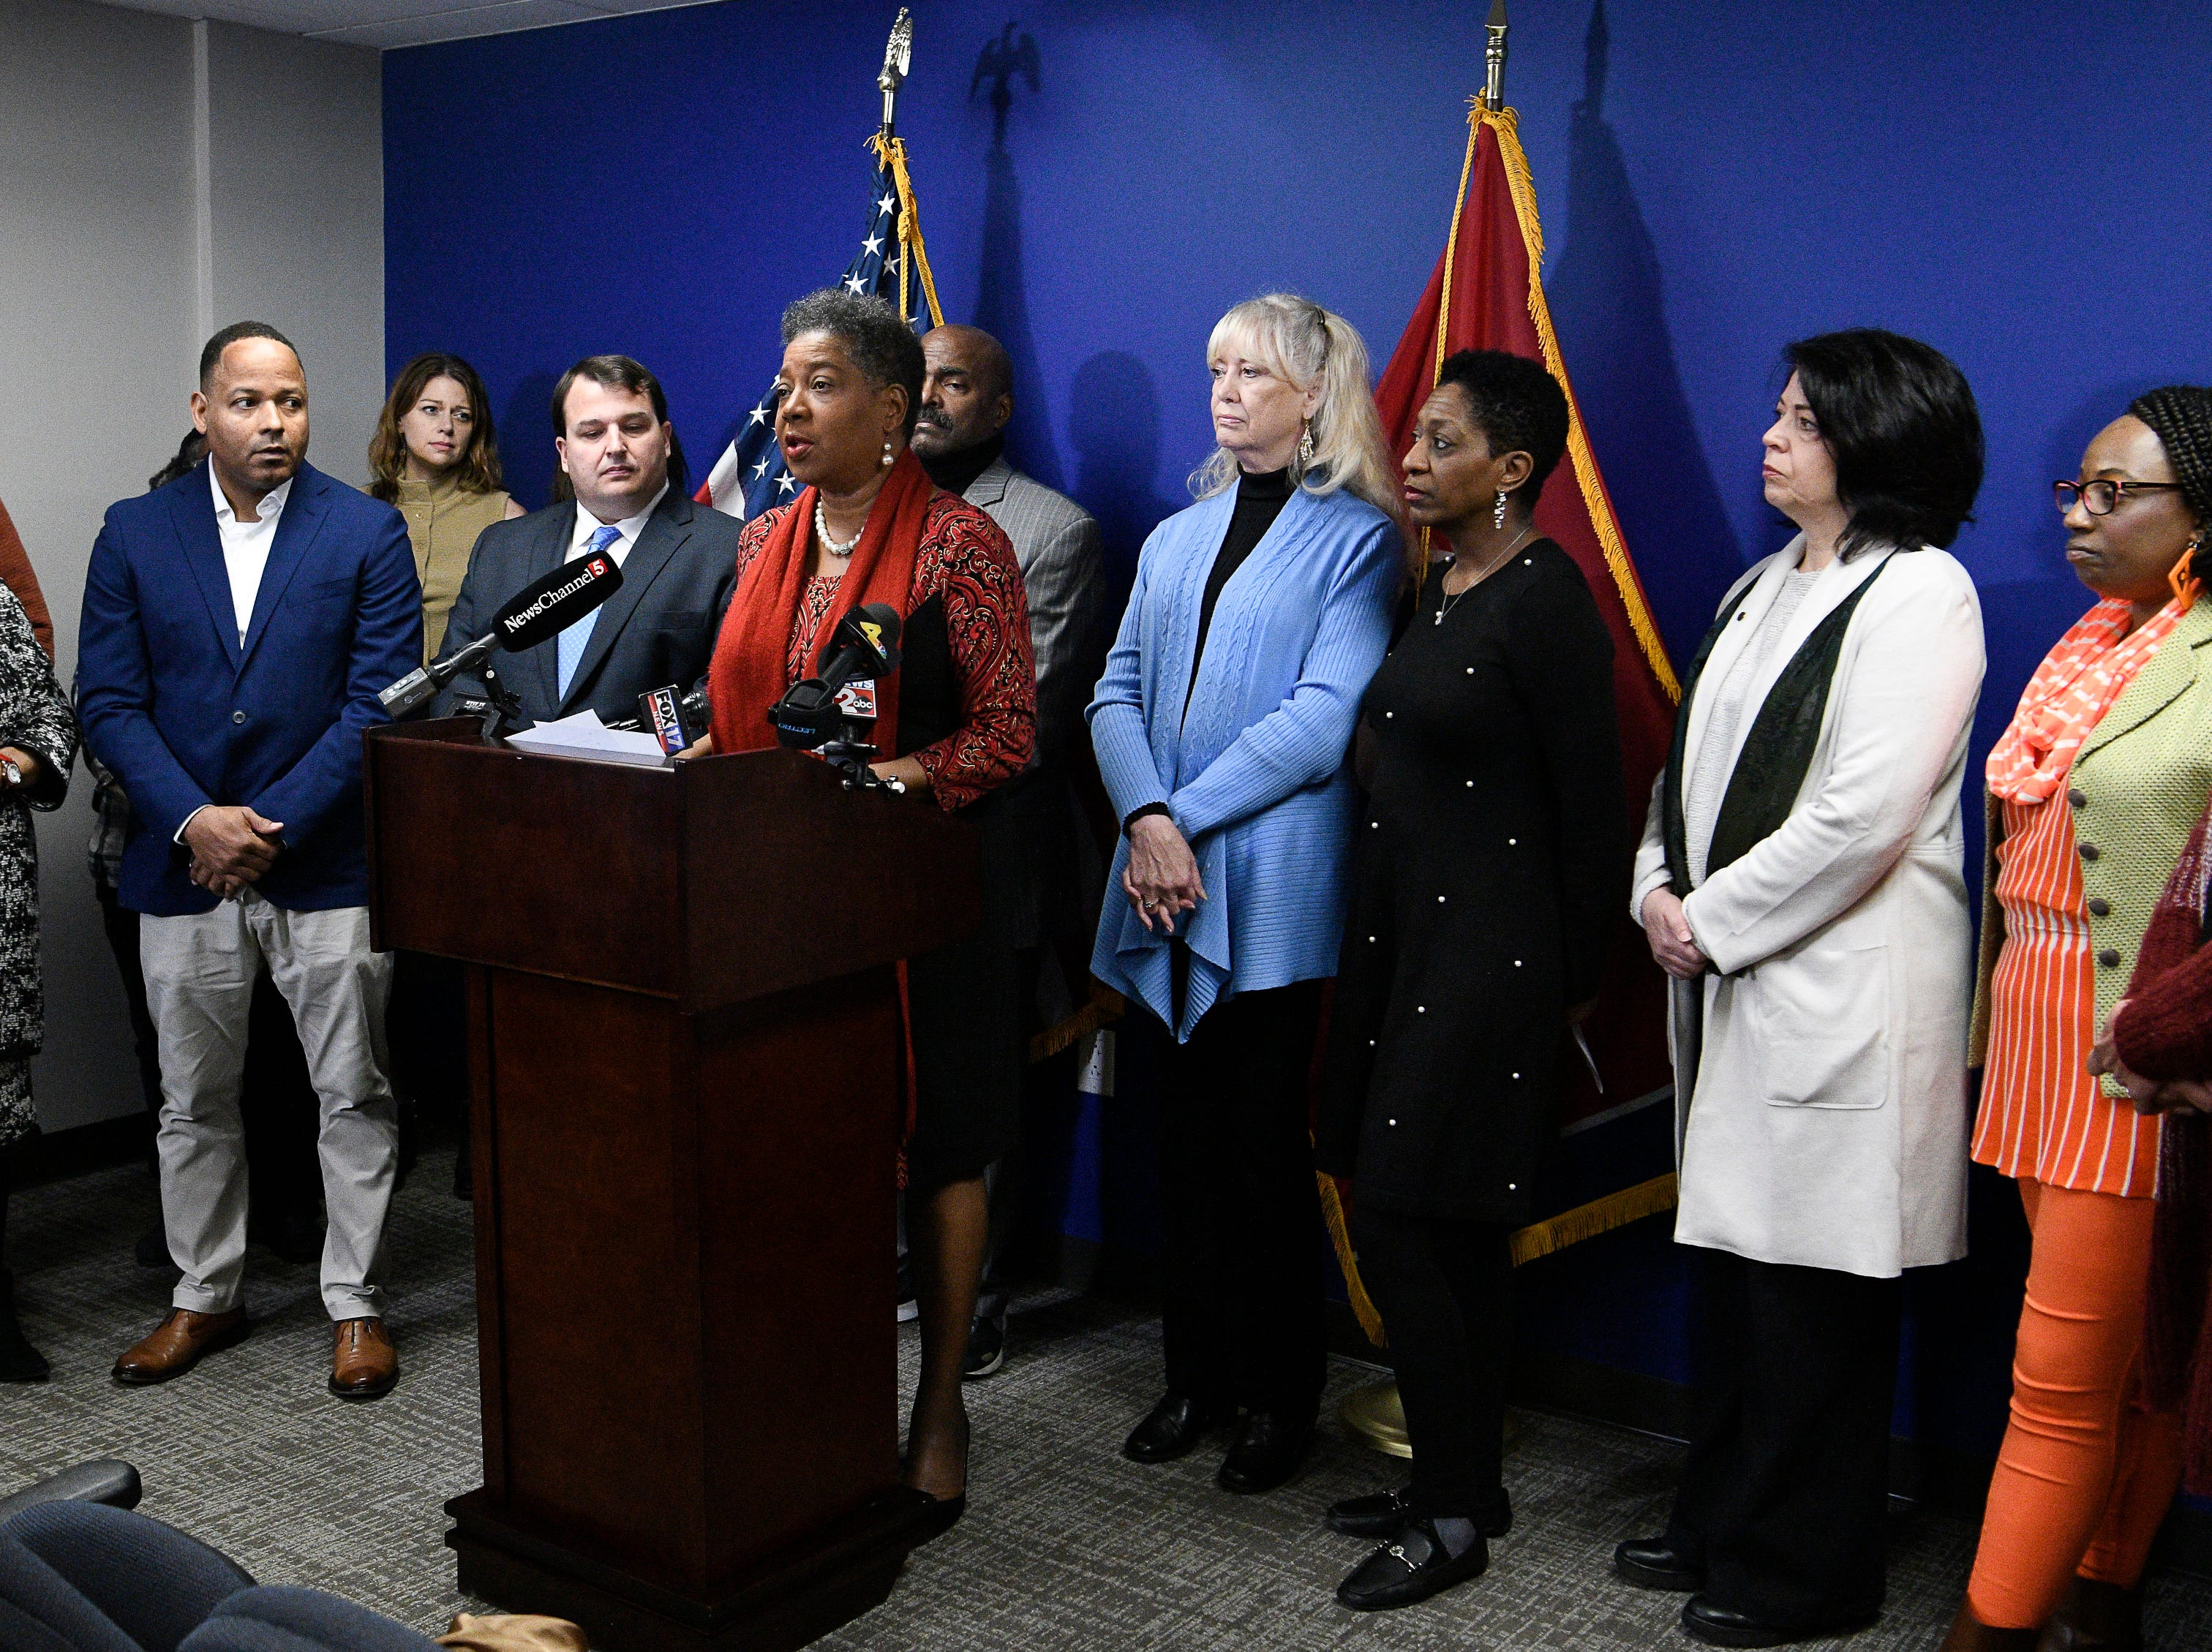 Tenn. Senator Elect Brenda Gilmore leads a press conference asking Gov. Bill Haslam to grant Cyntoia Brown clemency after being convicted of murder when she was 16-years-old in 2004 at the Cordell Hull Building Thursday, Jan. 3, 2019, in Nashville, Tenn.